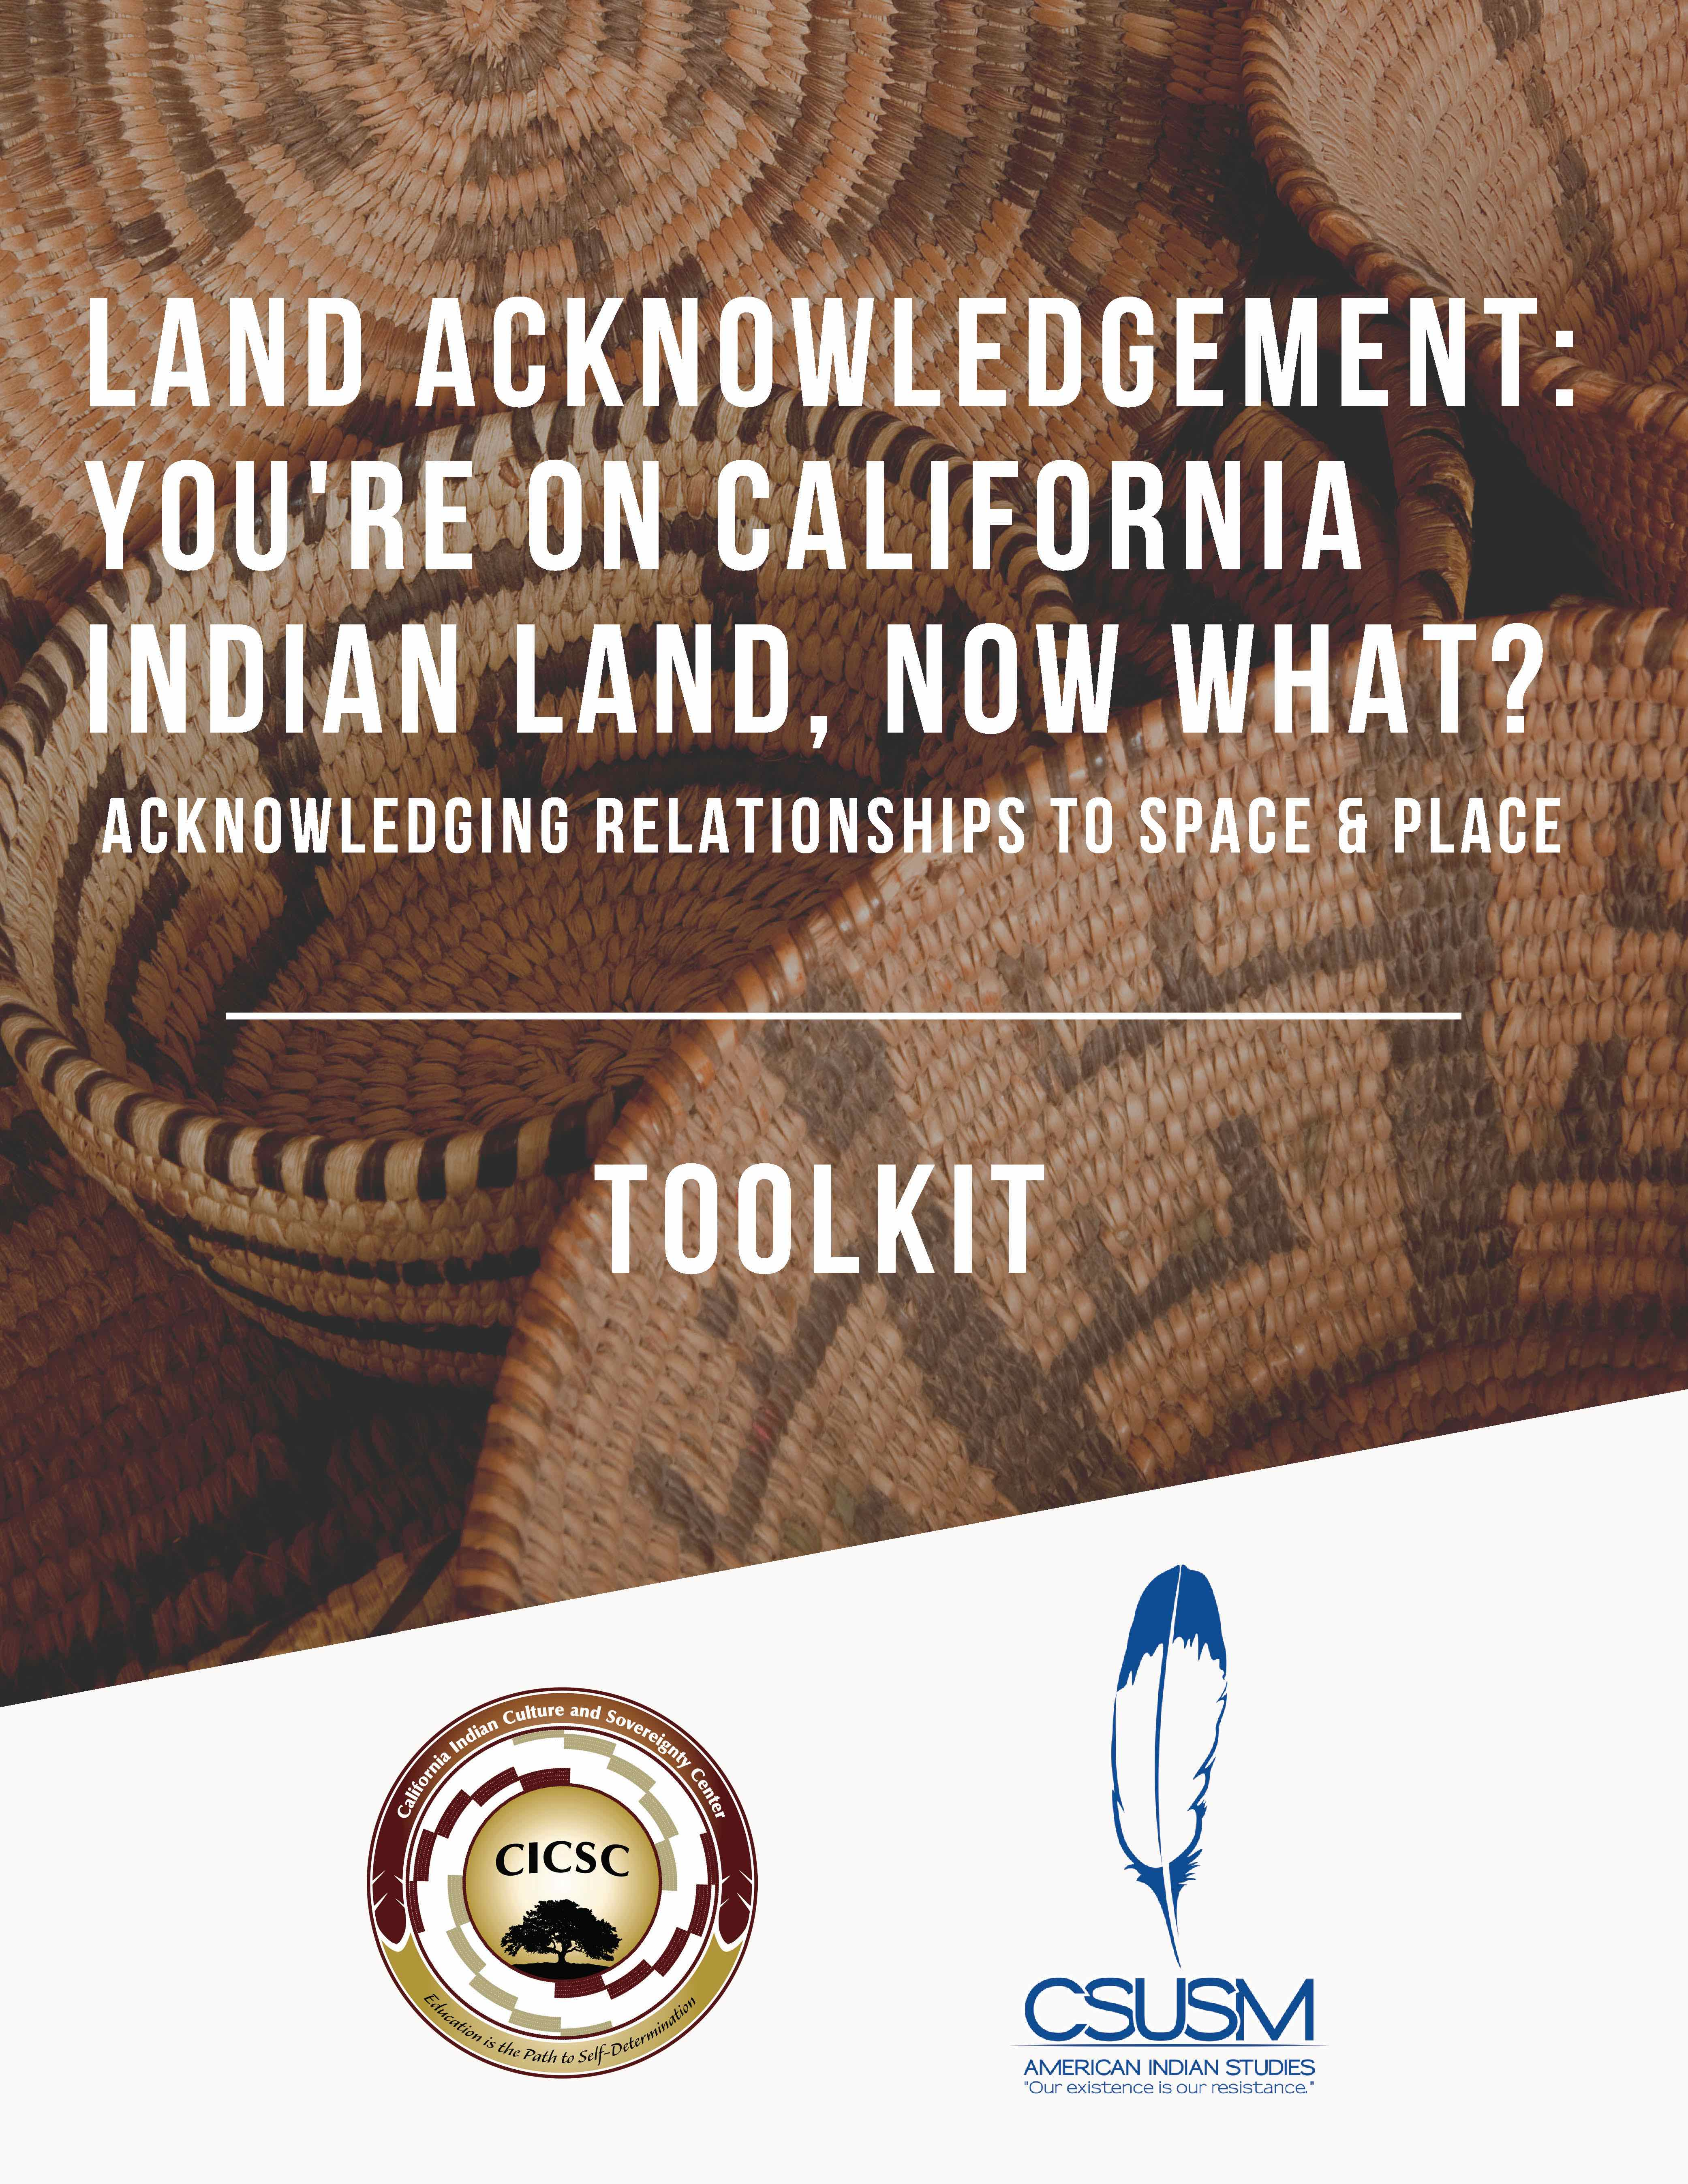 CICSC AIS Land Acknowledgement Toolkit